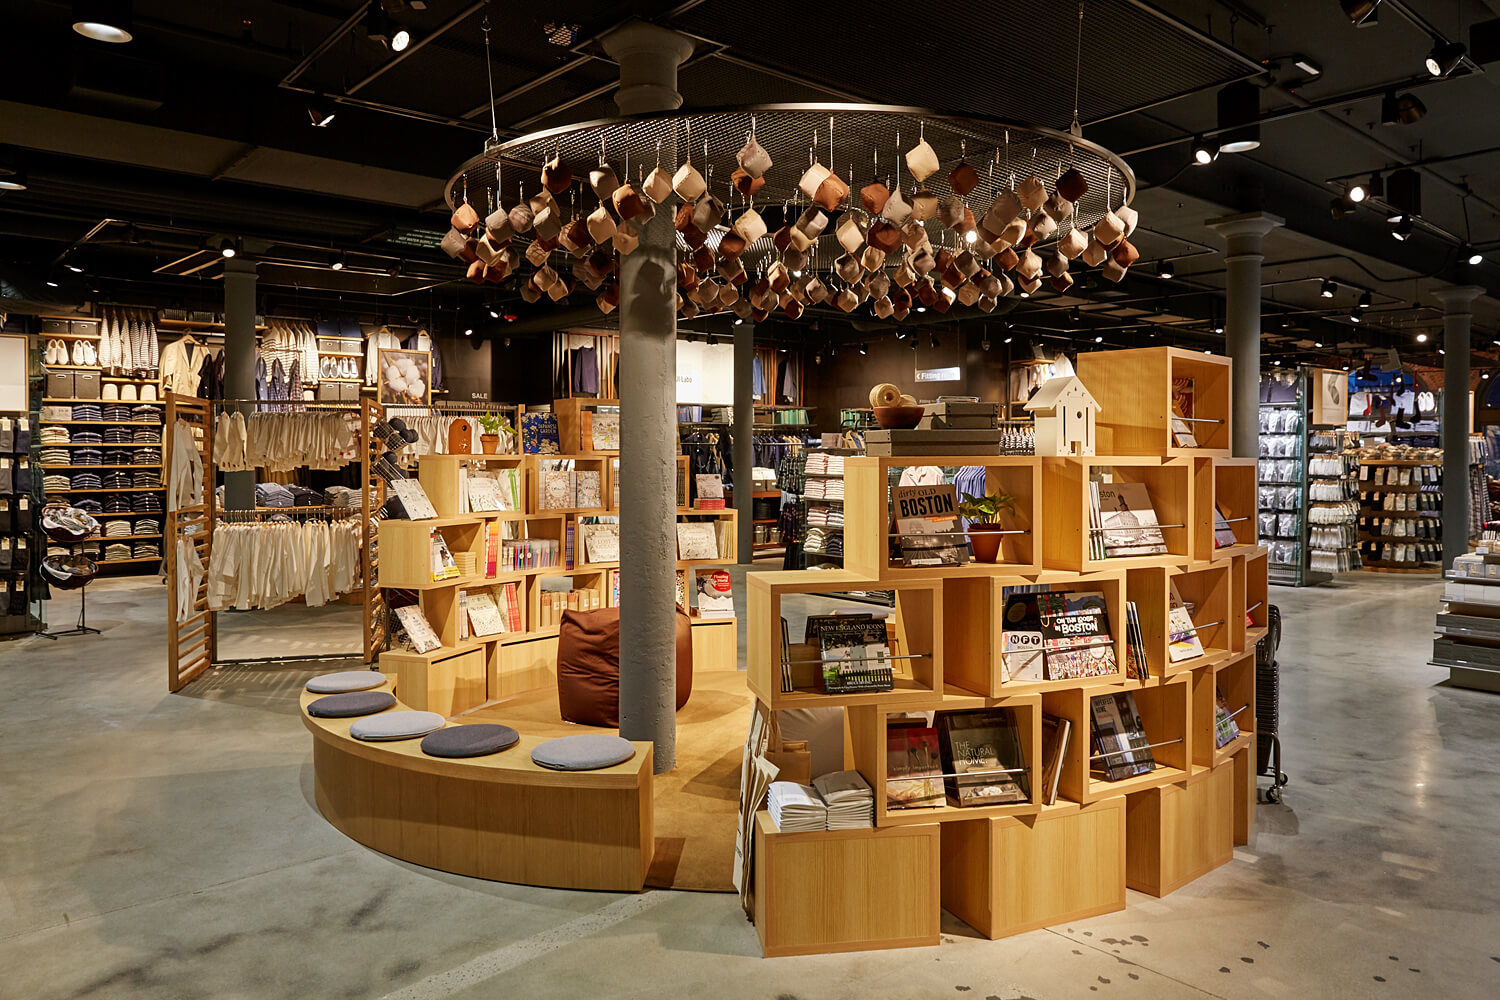 muji newbury street muji. Black Bedroom Furniture Sets. Home Design Ideas